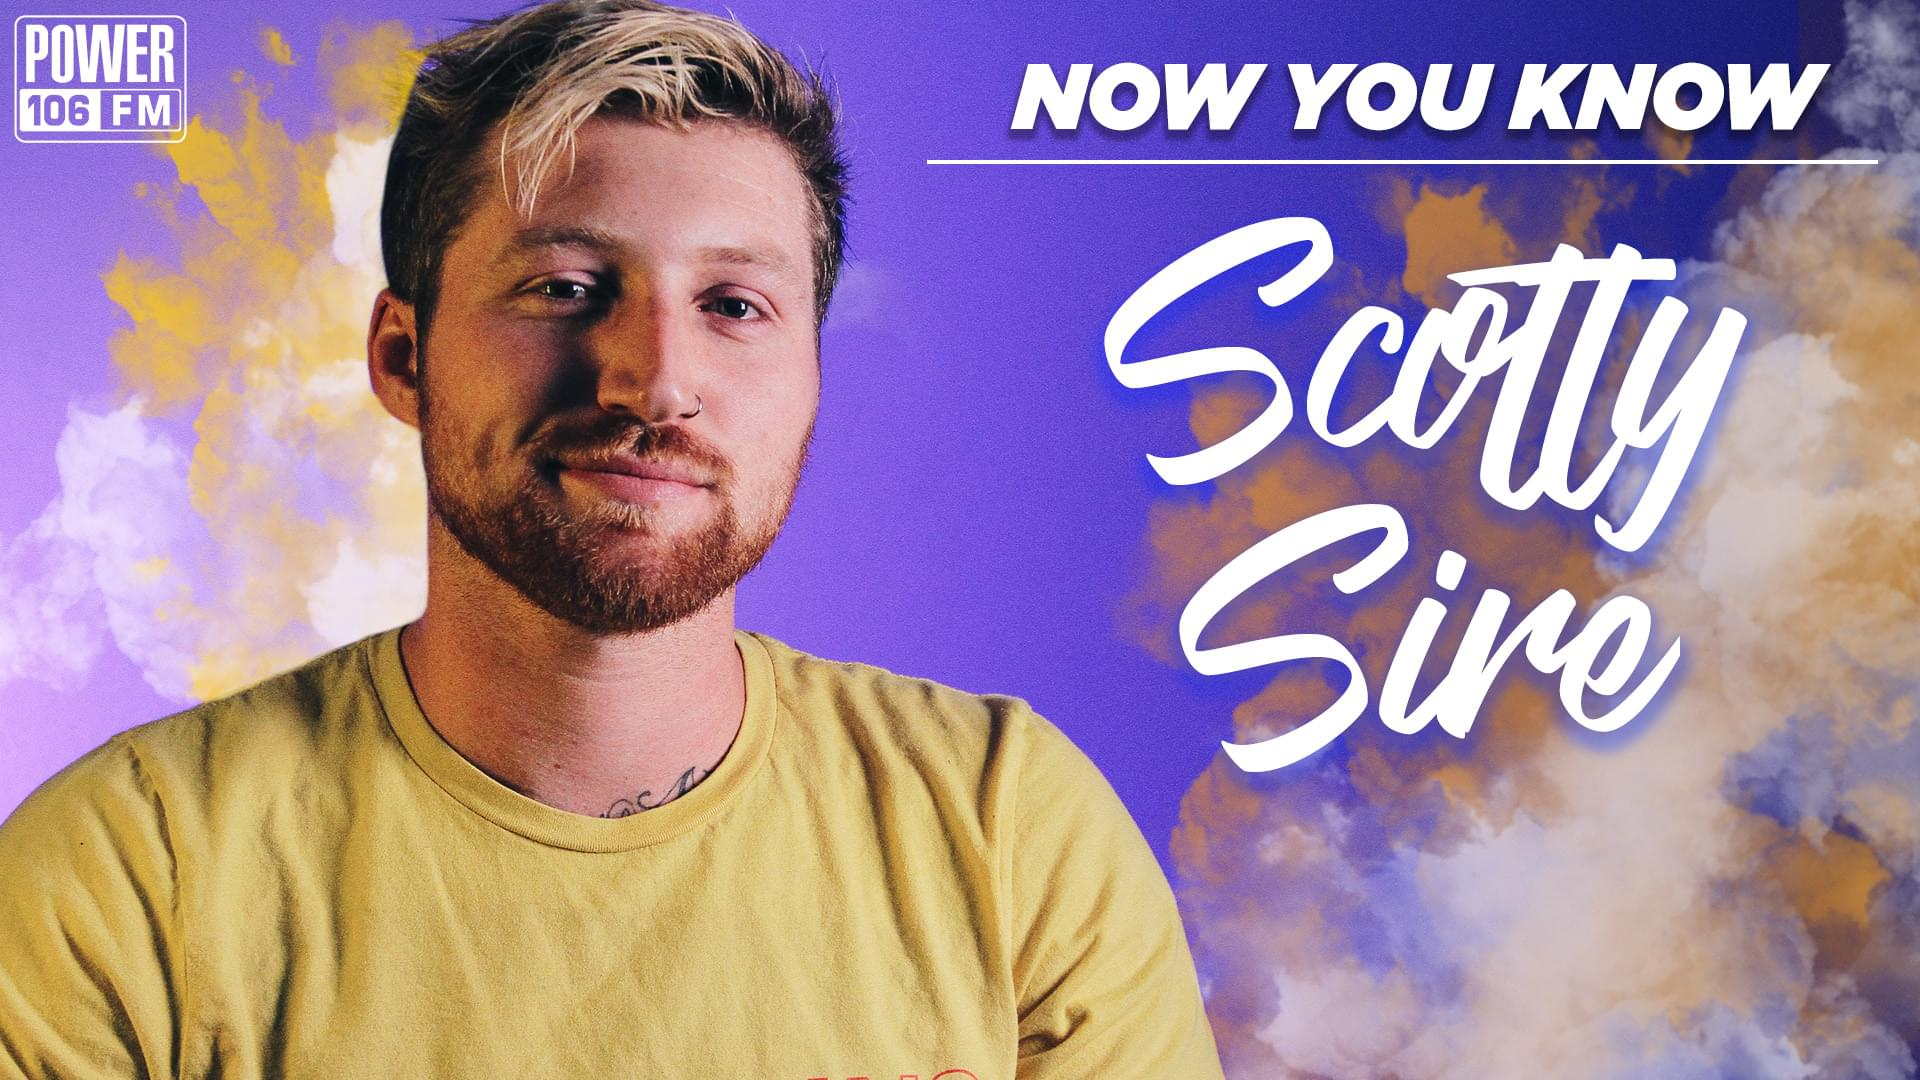 Scotty Sire On Transitioning From Youtube Star To Artist & Explains Ant Tattoo From Thailand [WATCH]